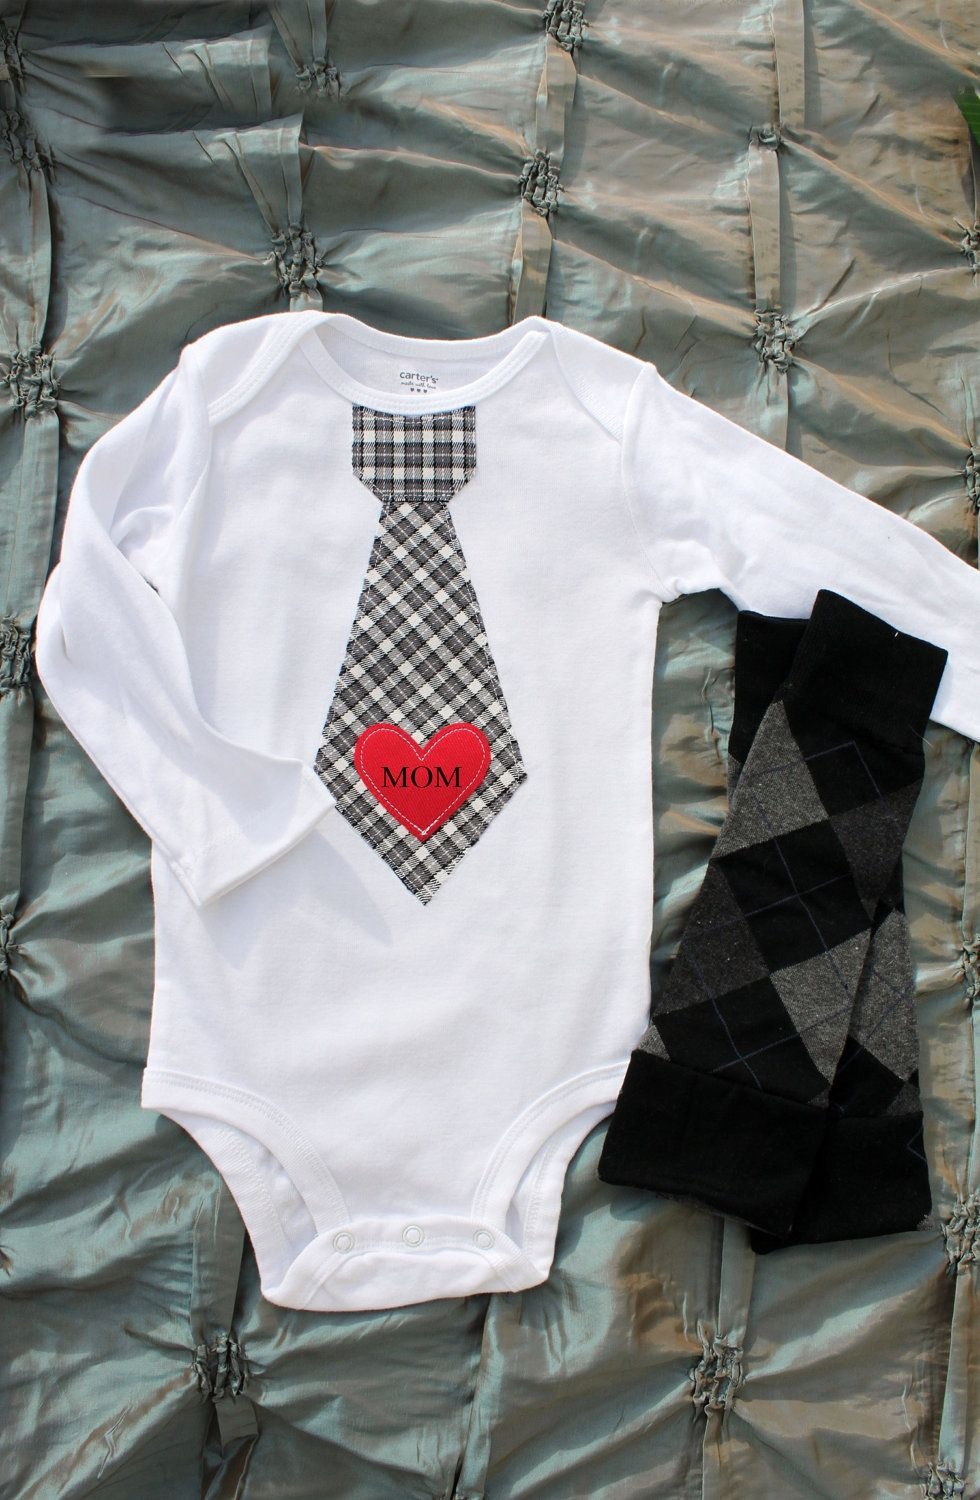 """A """"MOM"""" Tattoo Like Baby Boy's Red Heart Appliqued on Any"""